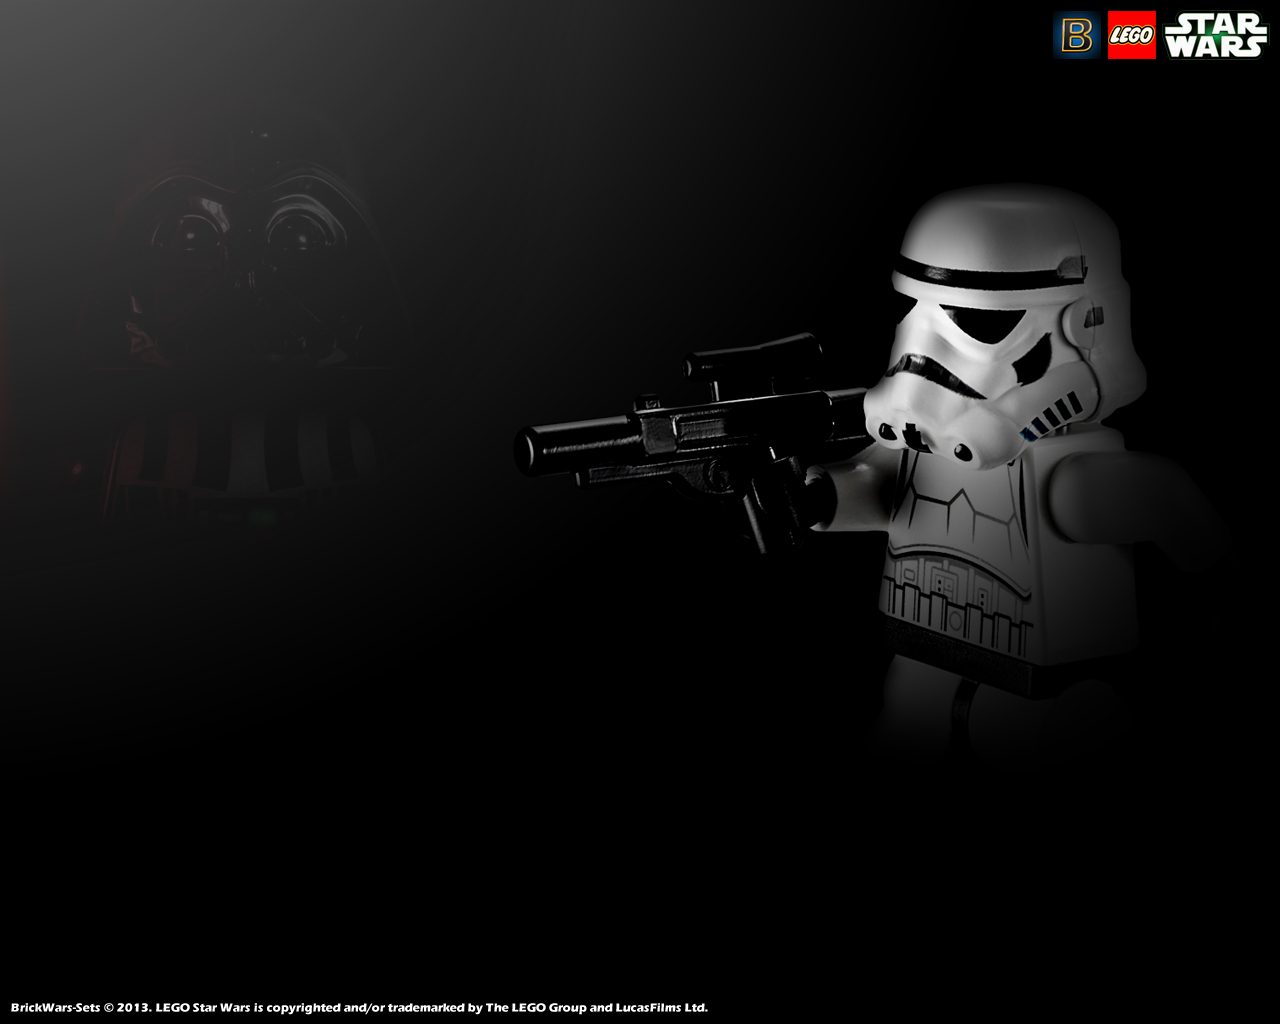 BrickWars Sets Your Ultimate Guide to Lego Star Wars Sets 1280x1024